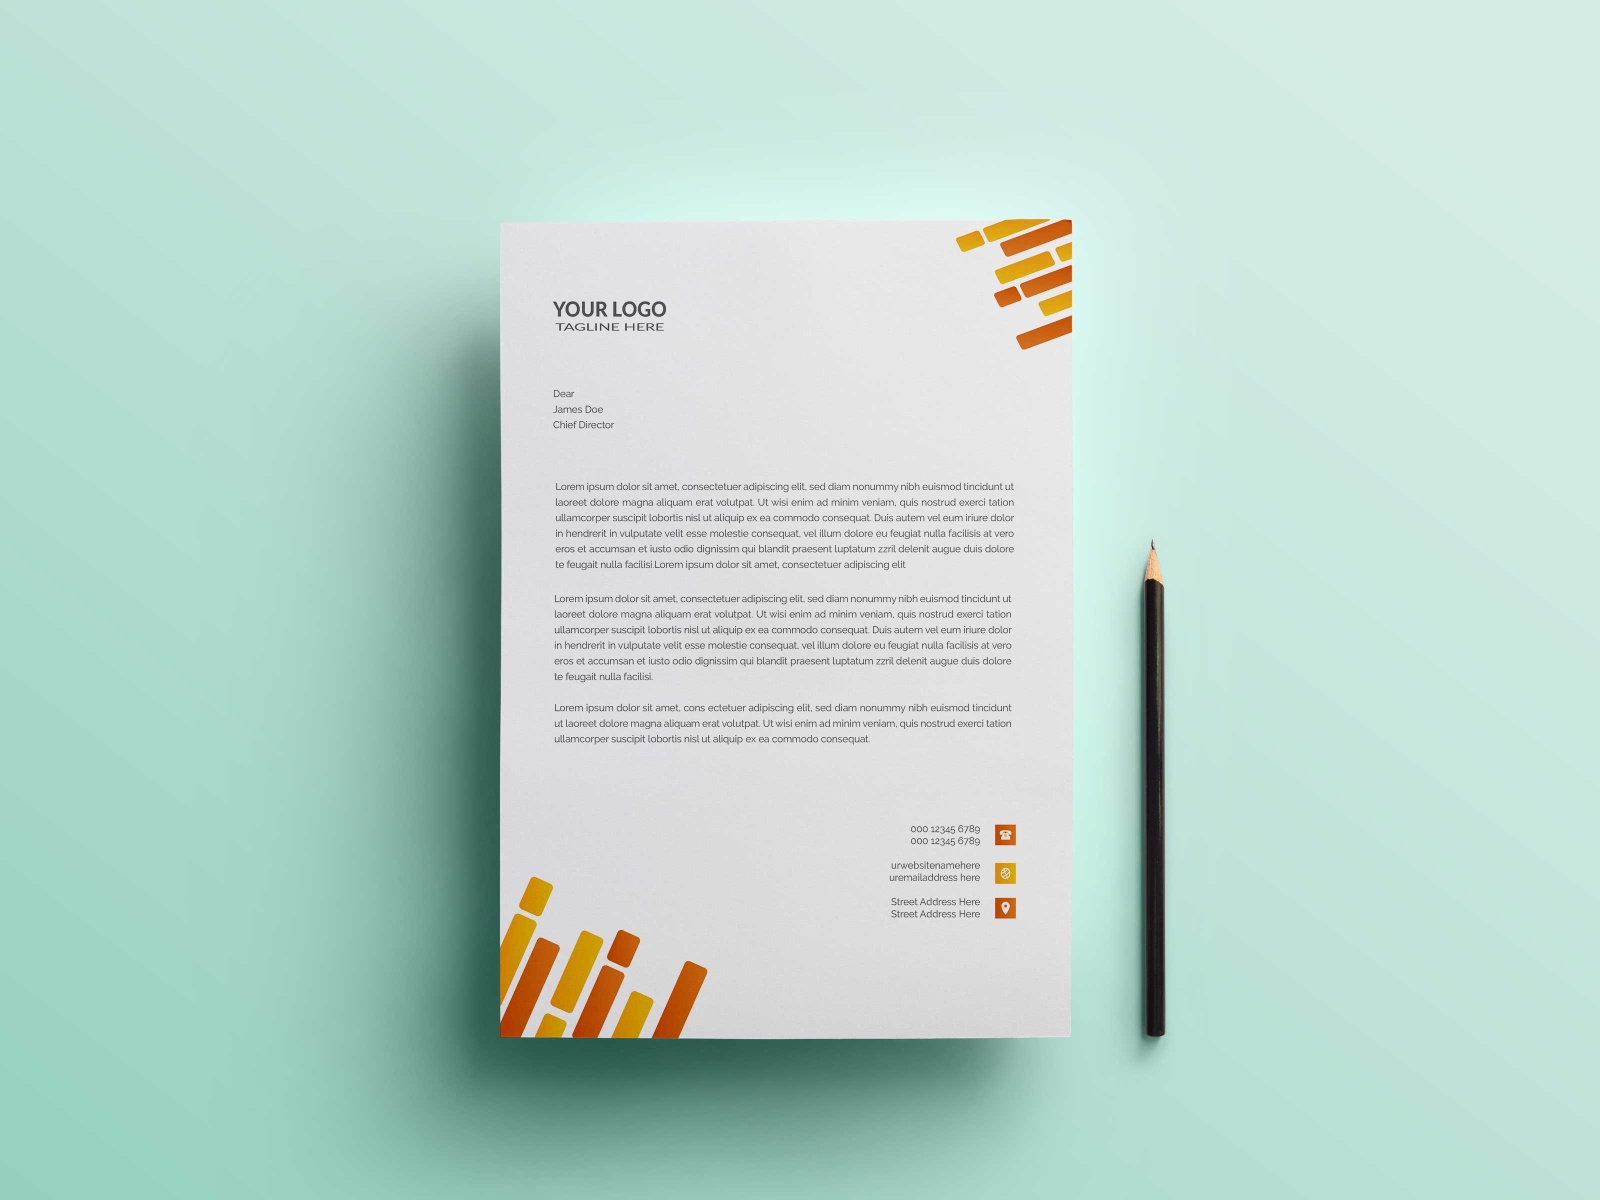 Modern Business Letterhead Design Template By Md Abubokor Siddique On Dribbble,Fashion Designer Business Card Ideas